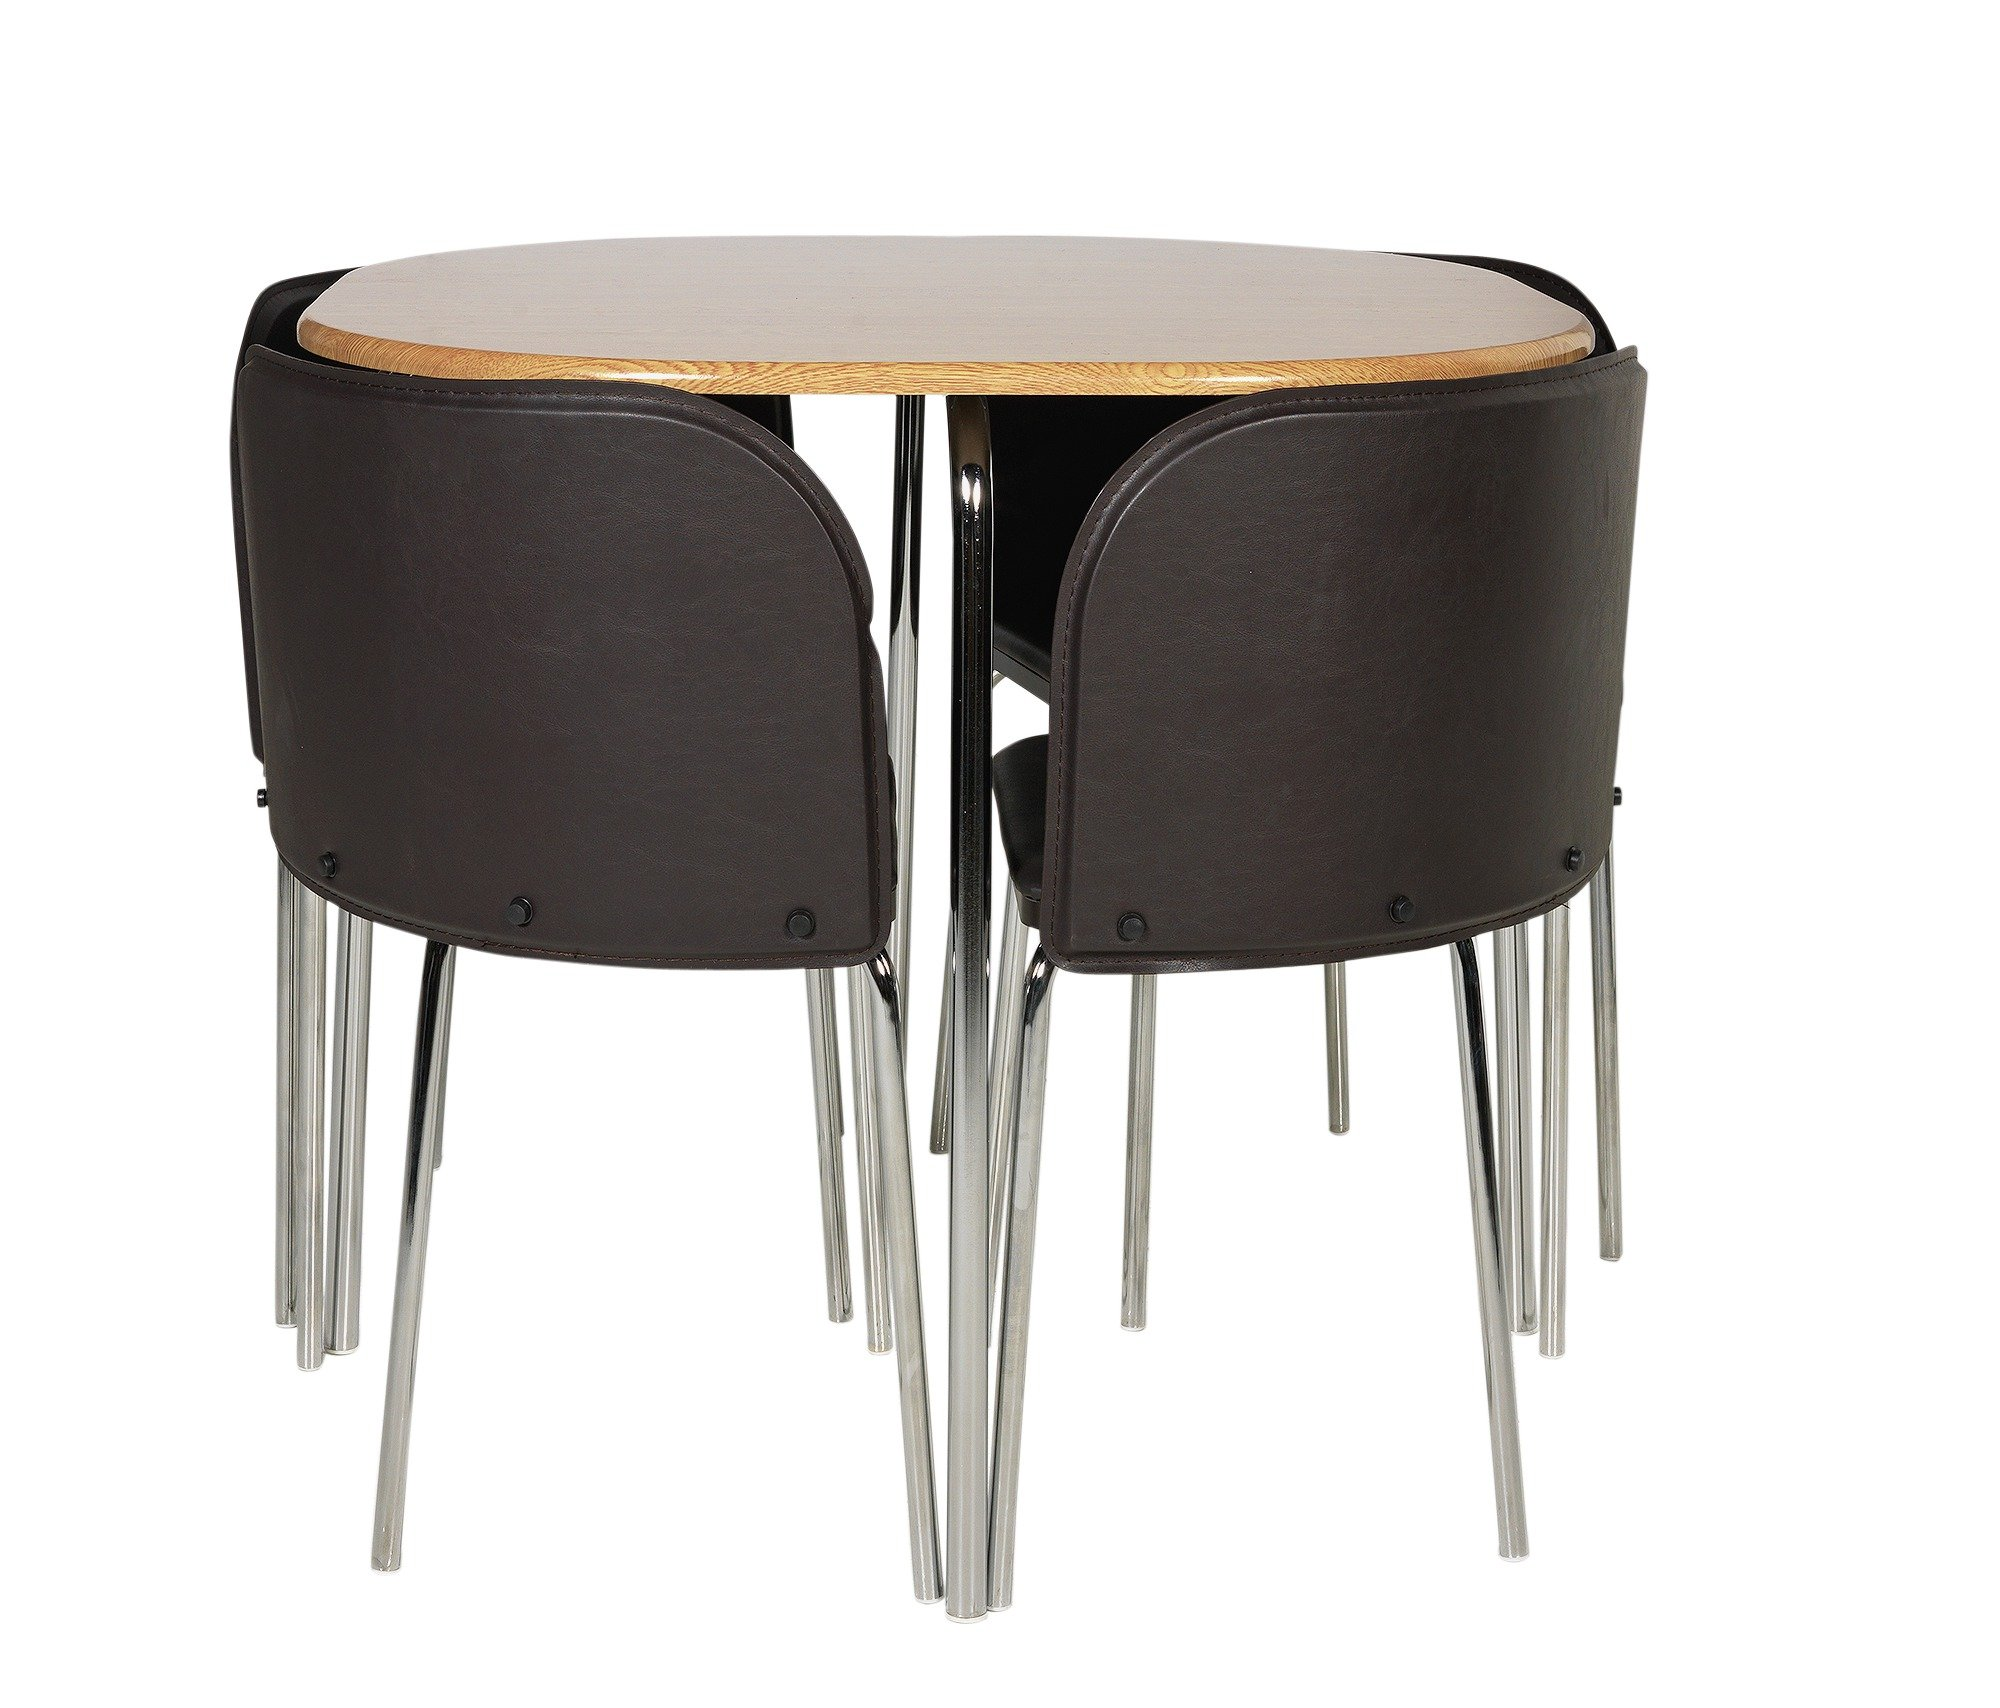 Buy Hygena Amparo Oak Effect Dining Table   Chairs - Chocolate